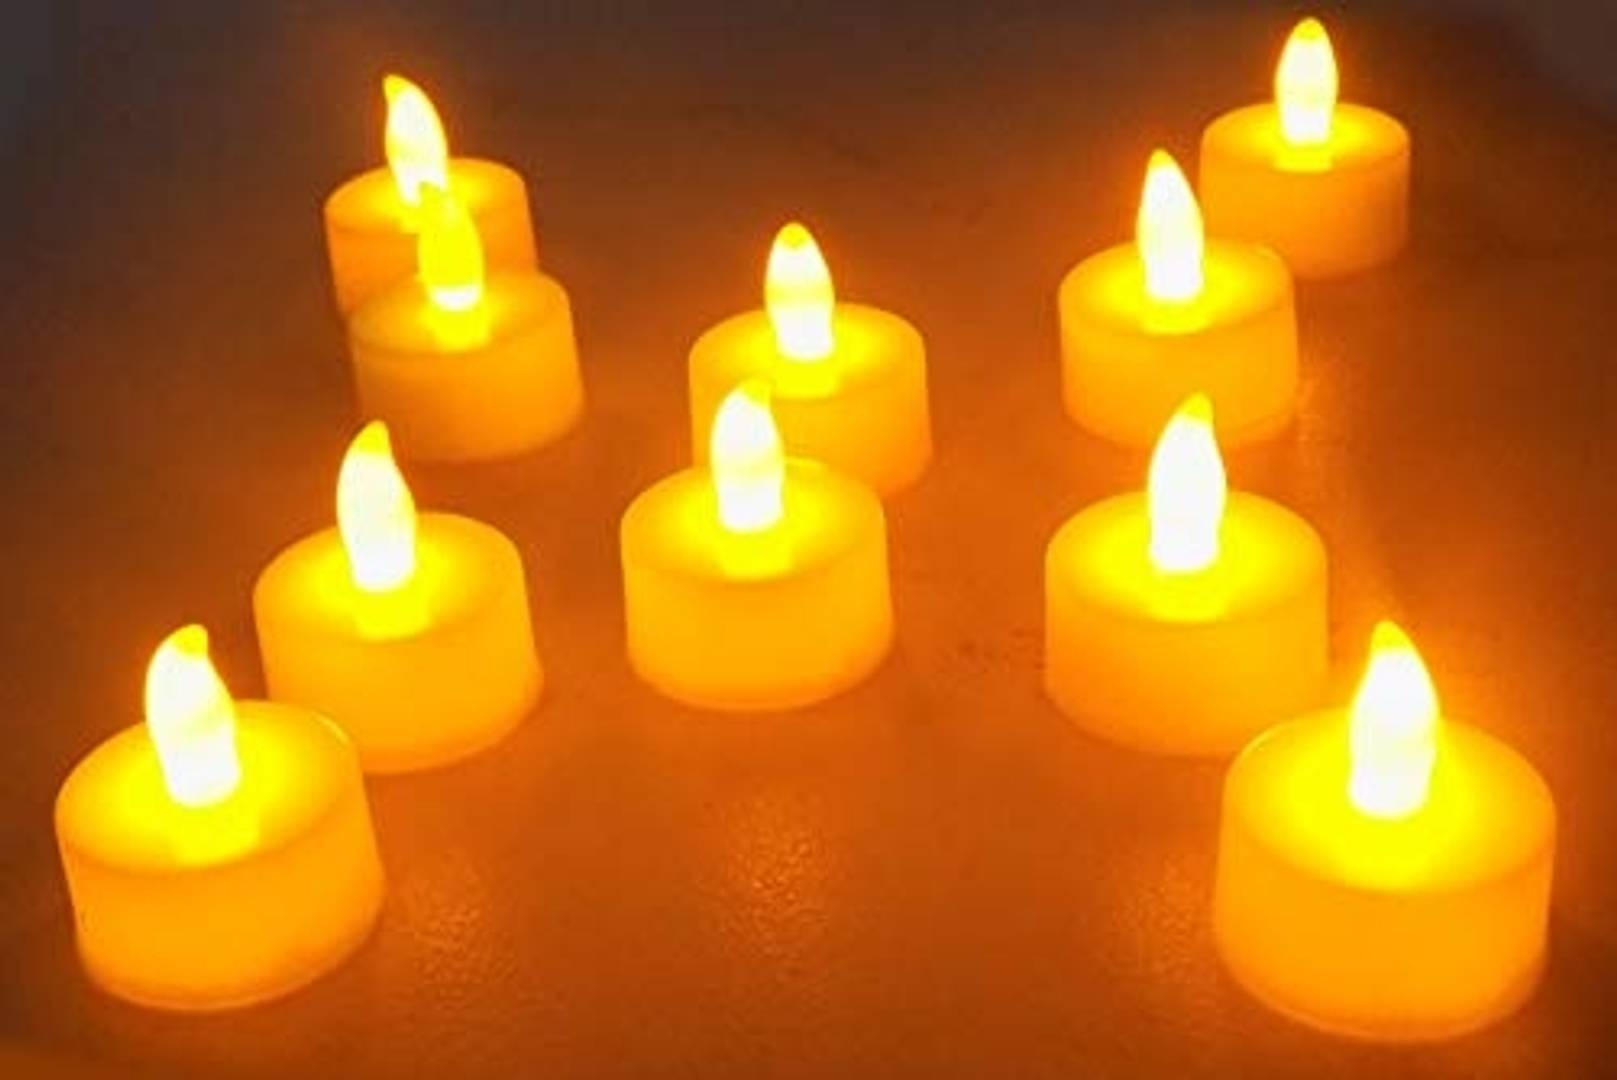 Fully Electric Candle Lights for Decoration Led Candle Lights Tea Lights Candles Smokeless Candles for Decoration Set of 12 Pcs 20 Gram Pack of 1